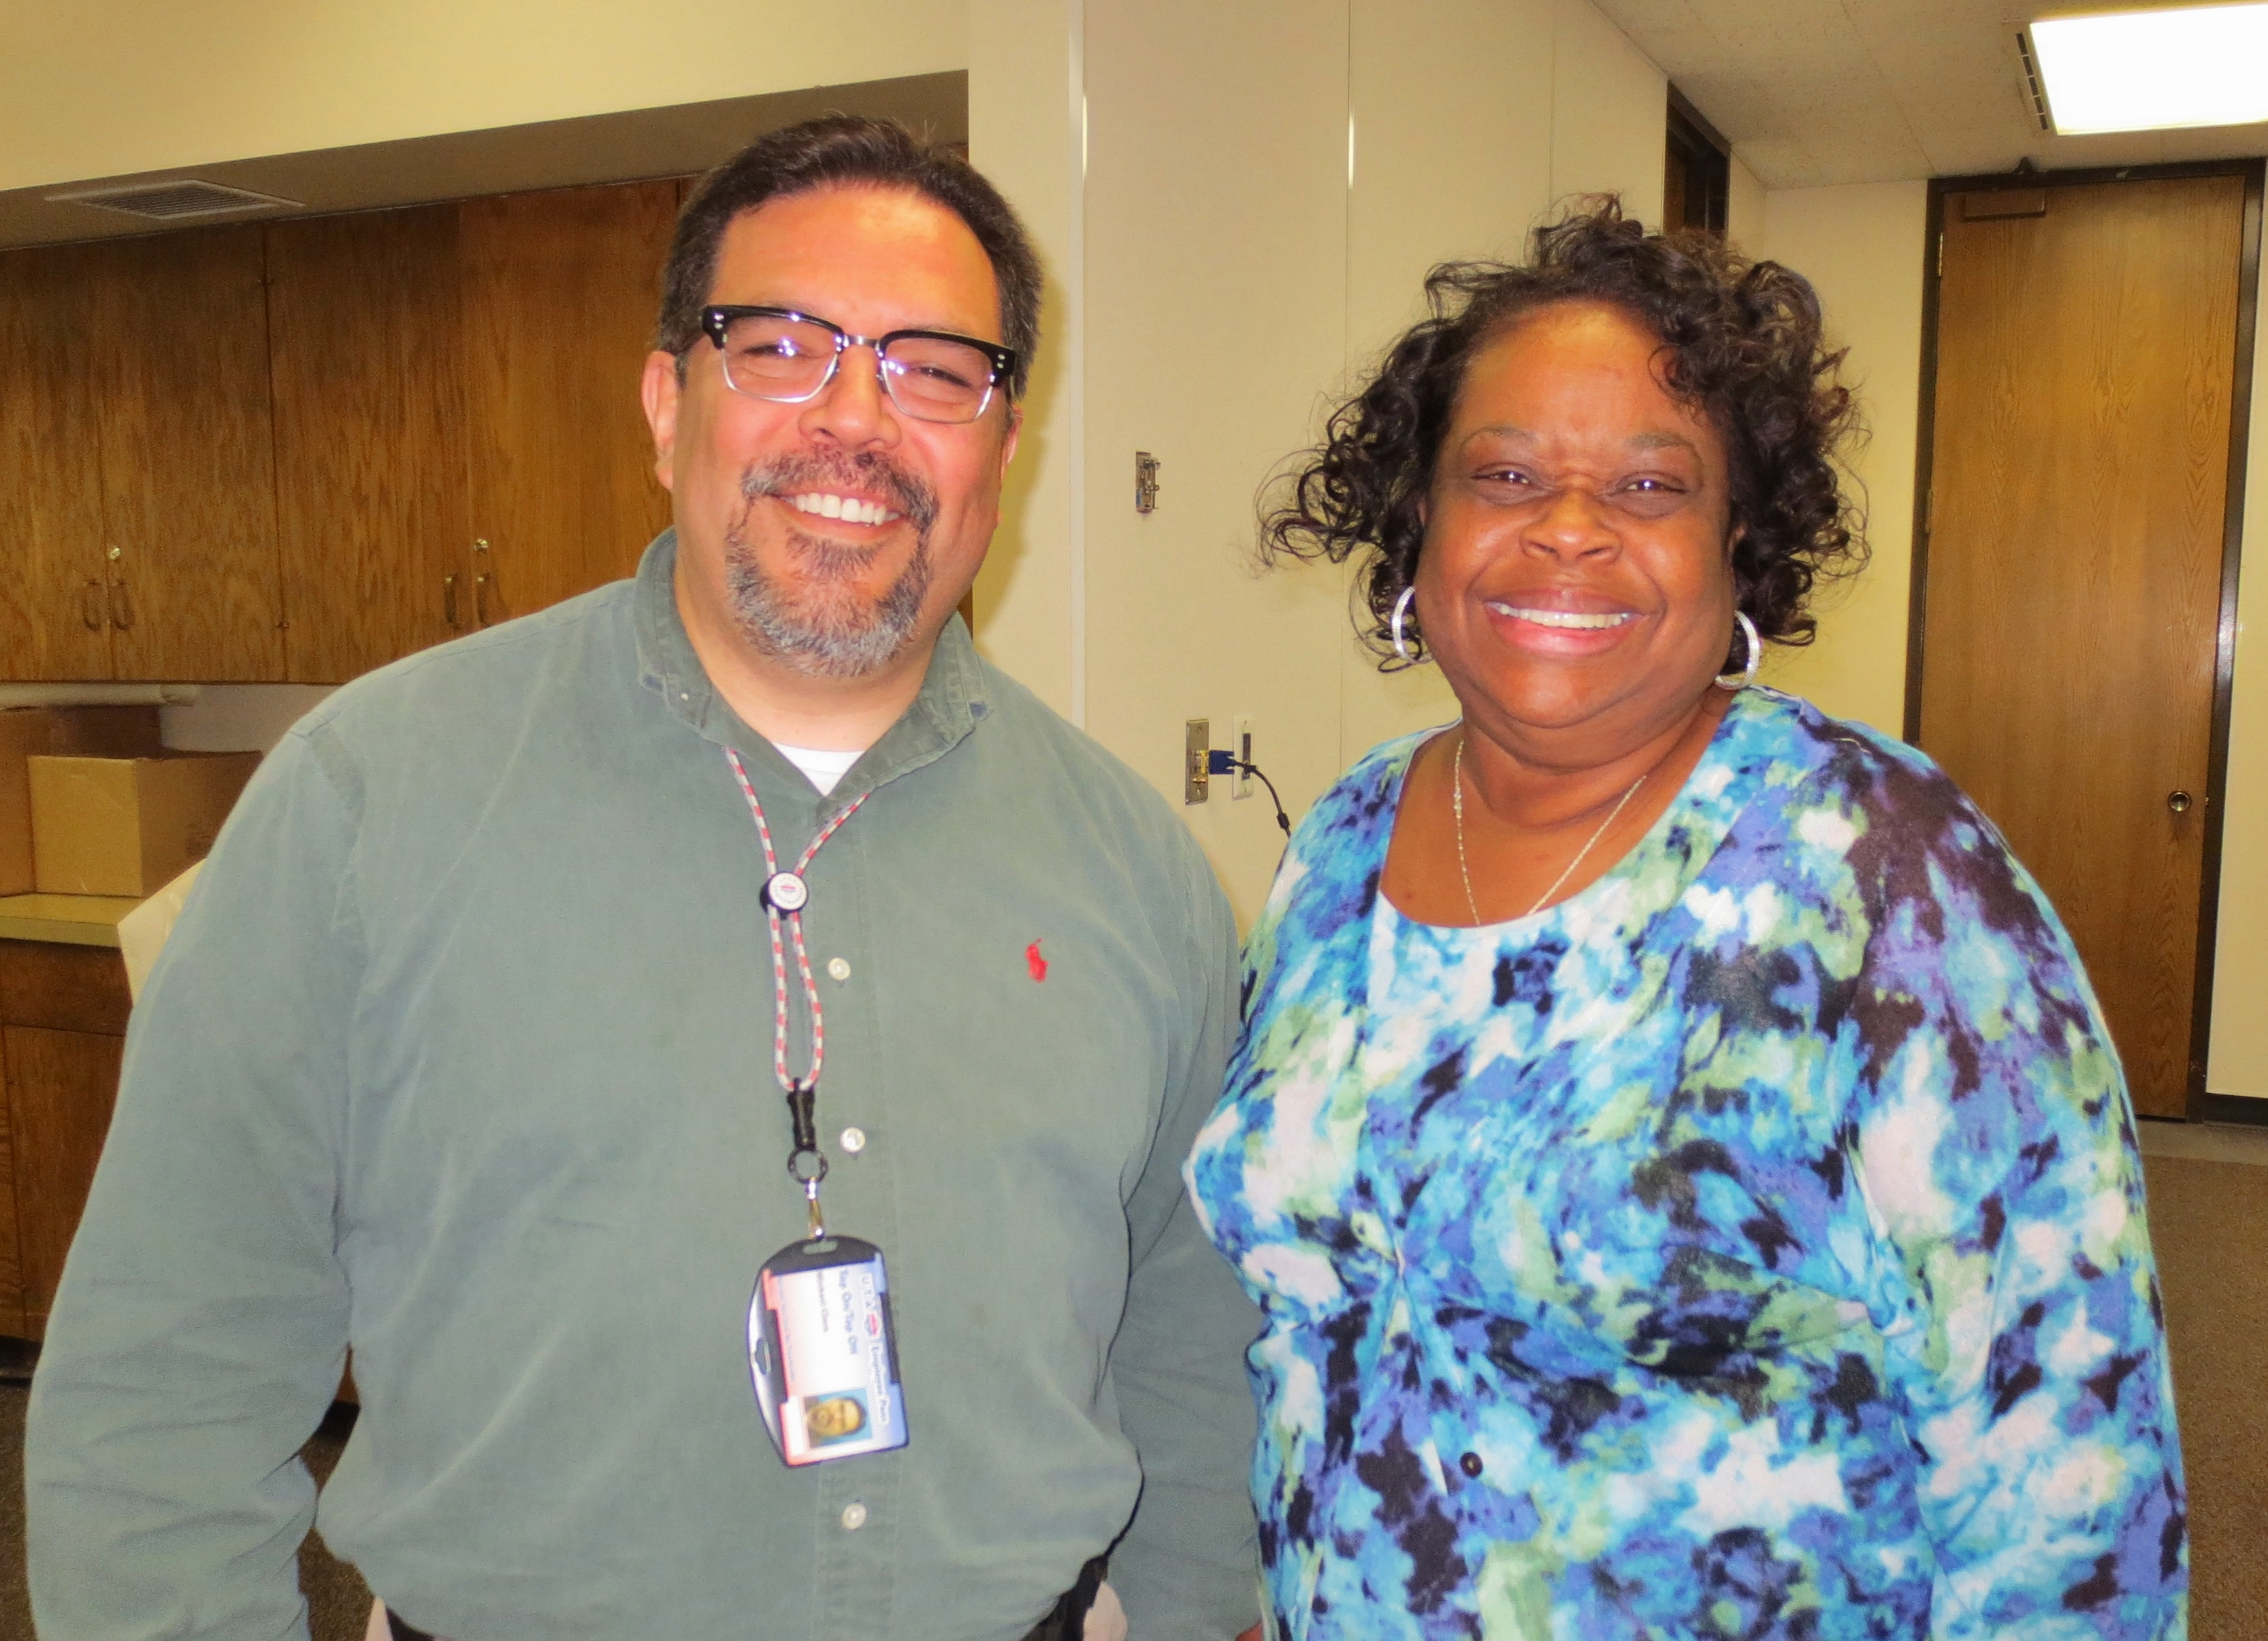 Michael with Kathleen Christy, Assistant Superintendent - Summer of 2014